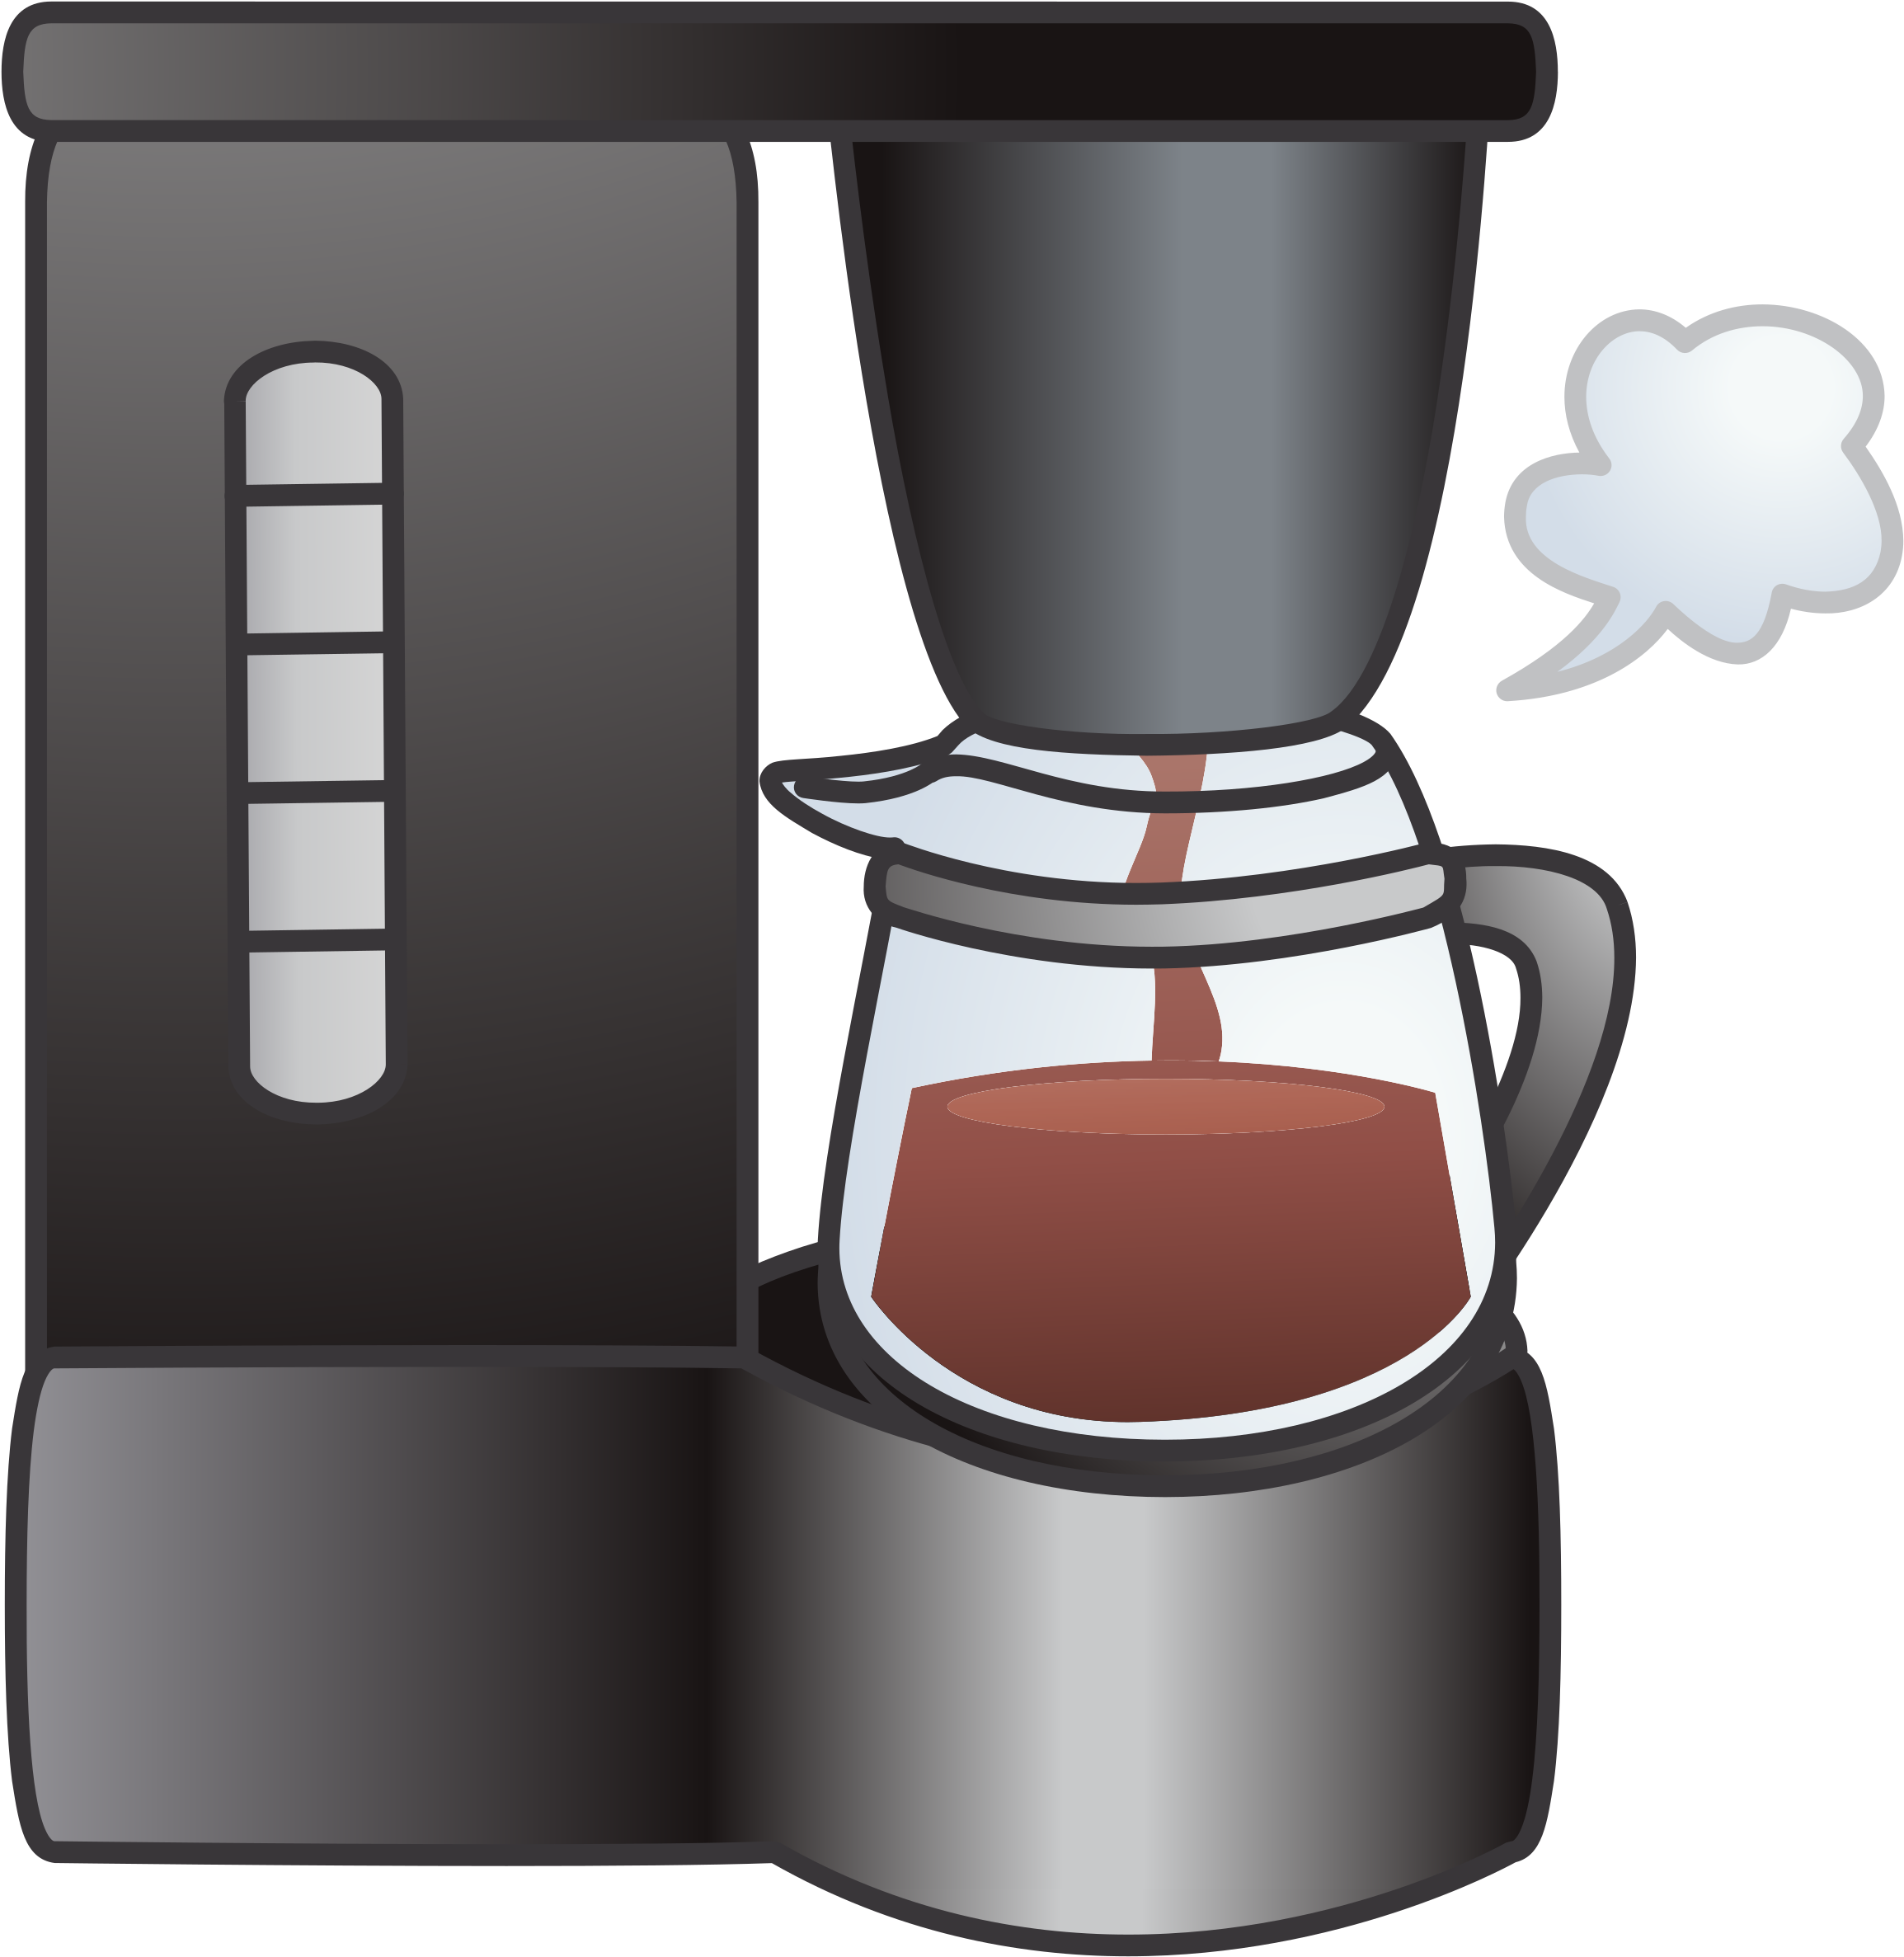 black and white download Image global market share. Coffee maker clipart